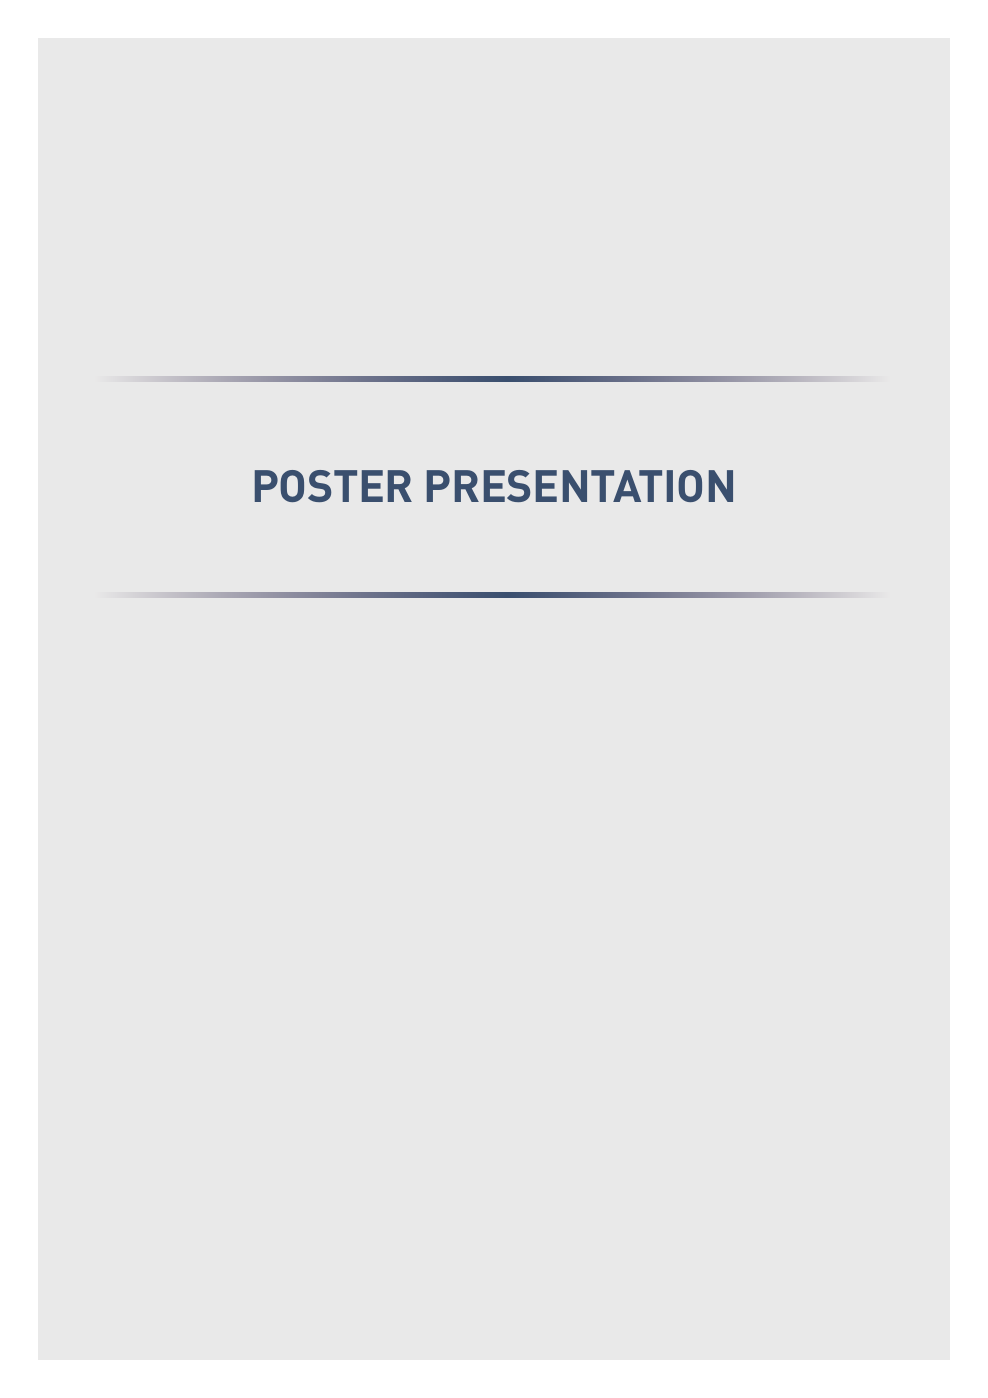 ABSTRACT Poster Presentation (1) – topic of research paper